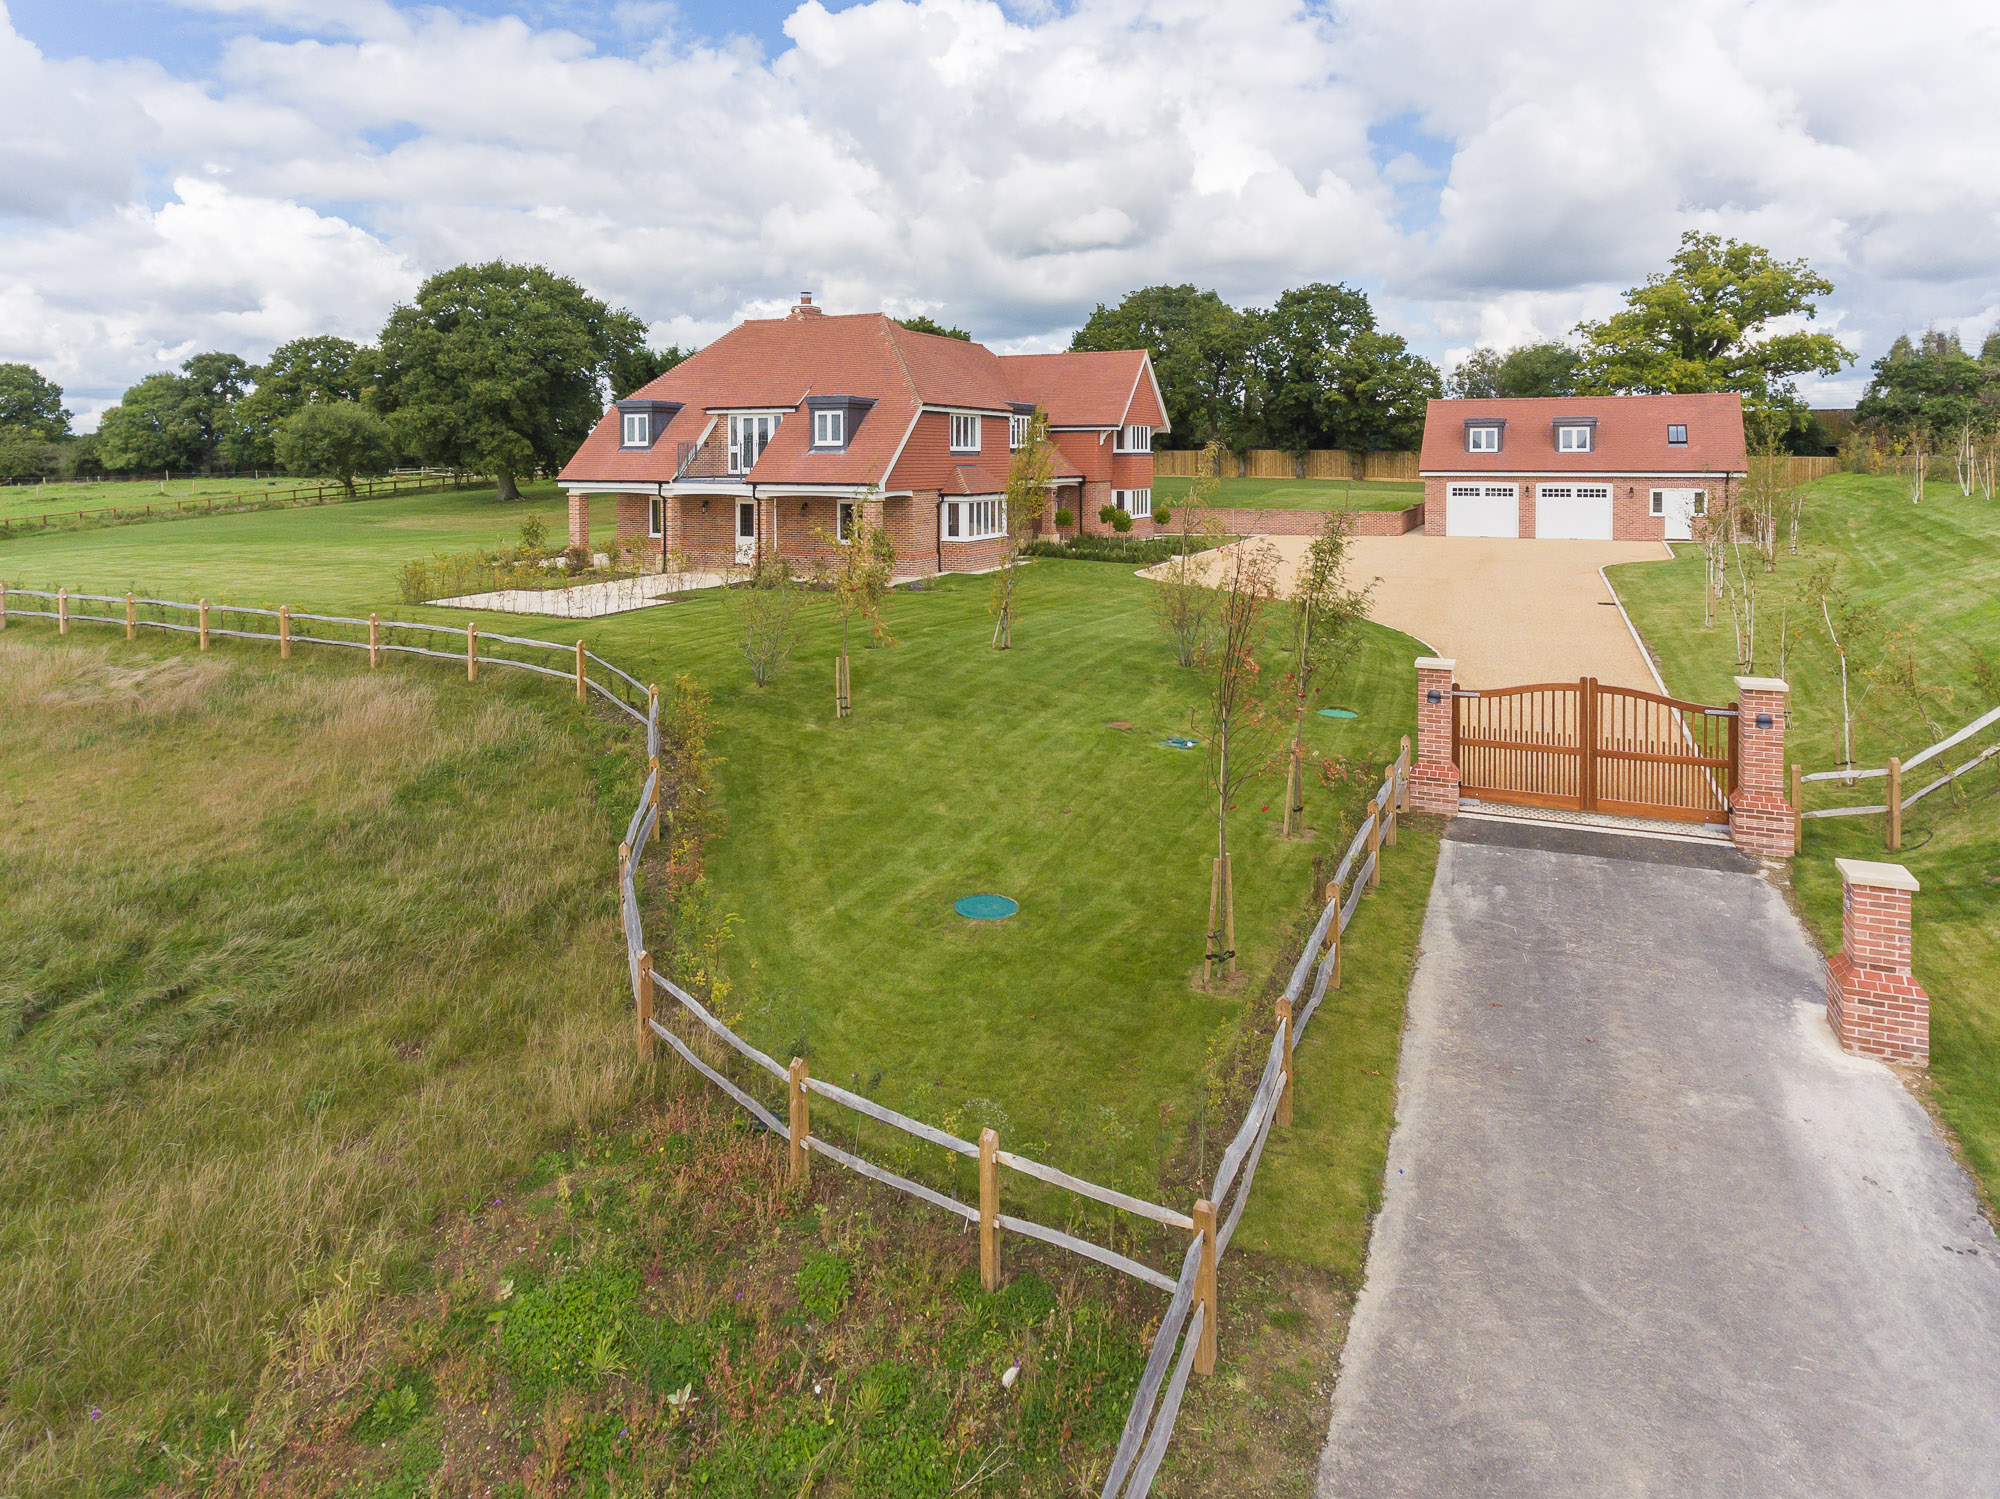 jonathan bond aerial photographer, aerial drone view of driveway to residential house